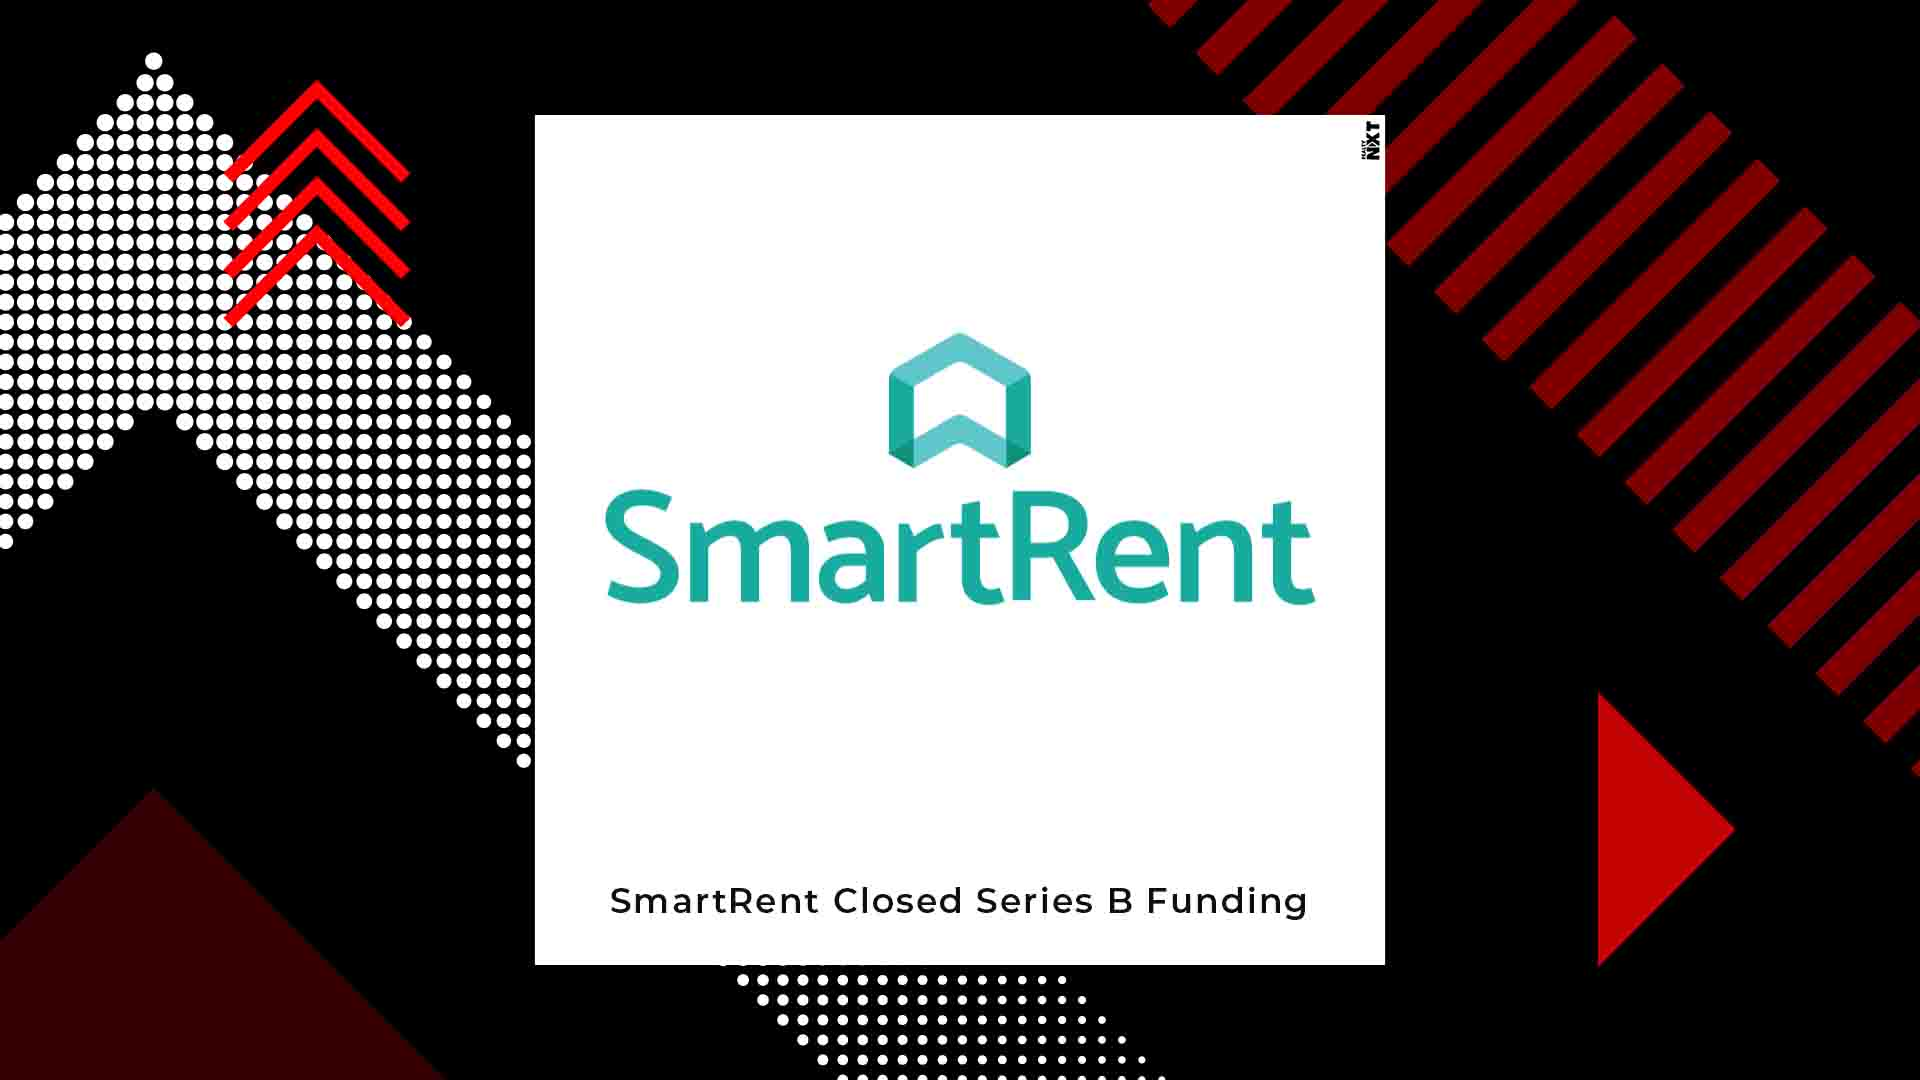 SmartRent Raises Funds Through Series B Funding